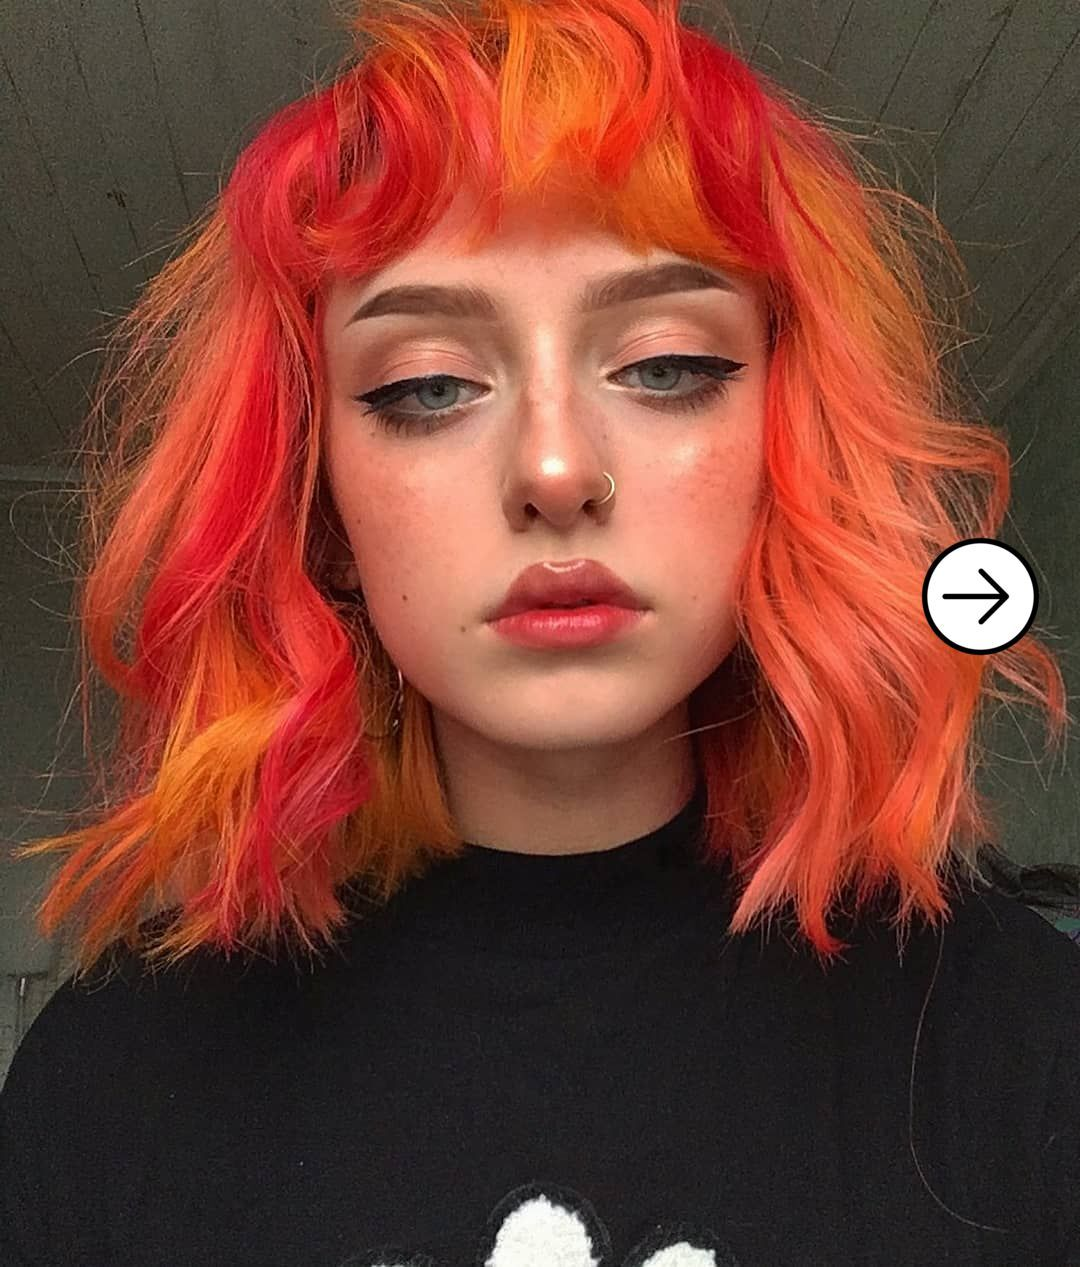 20 Inspiration Of Egirl Makeup You Can Do In 2020 In 2020 Hair Color Orange Peach Hair Peach Hair Colors